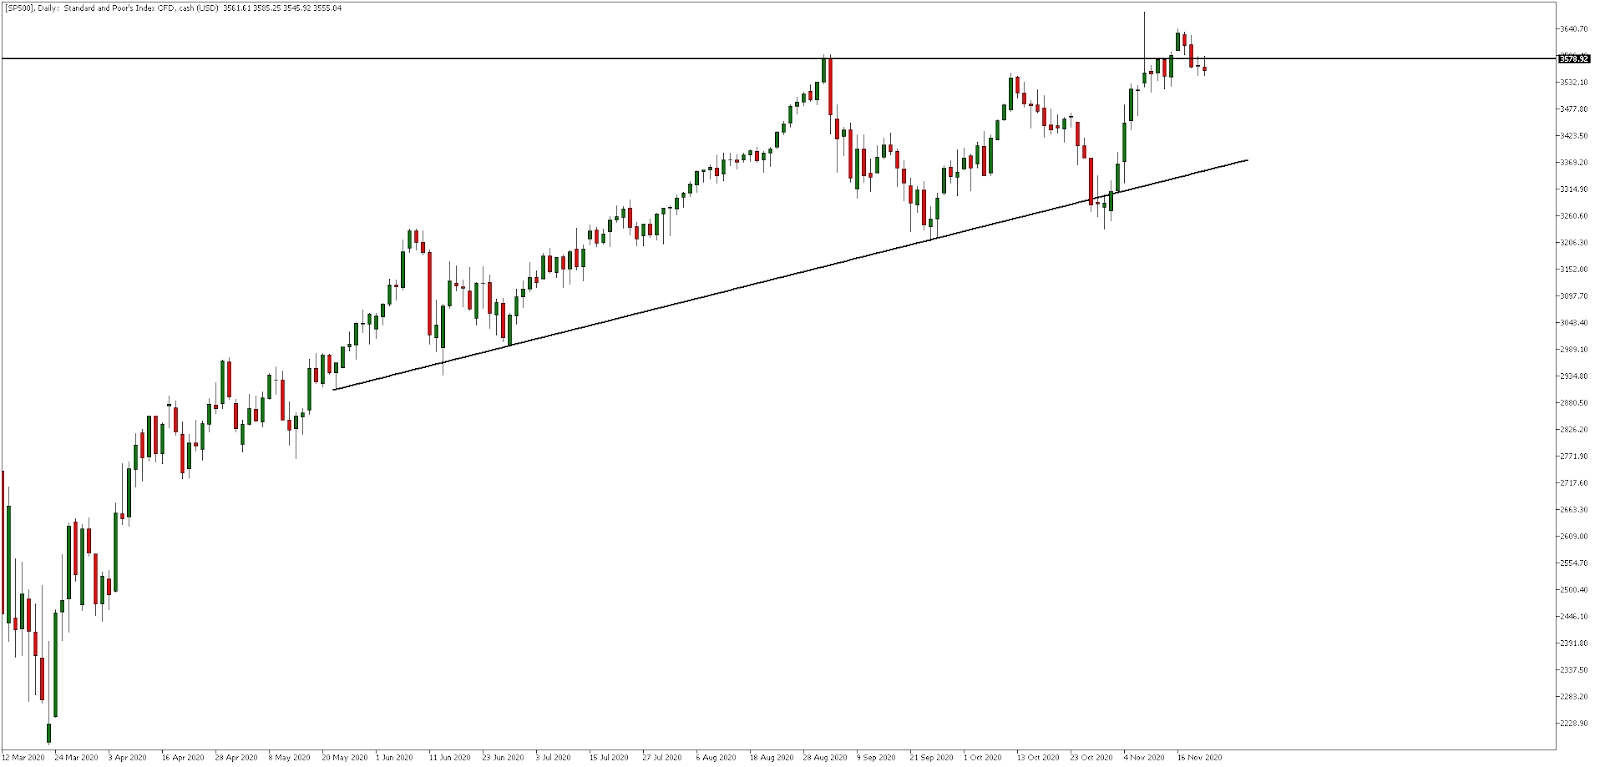 SP500, Daily